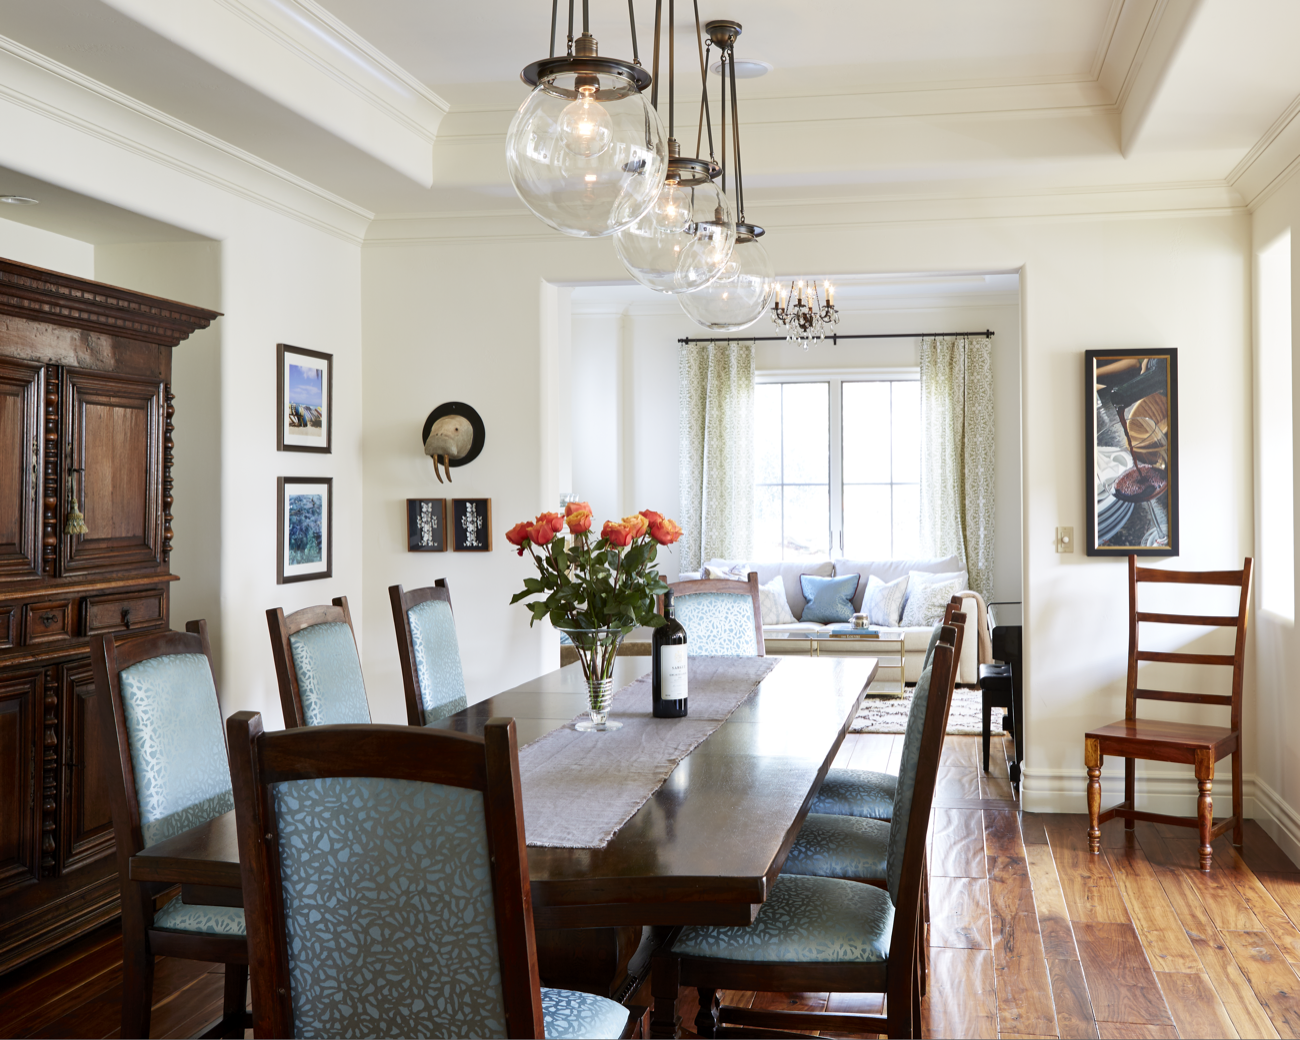 Dining_Room_LR-13299 copy.png